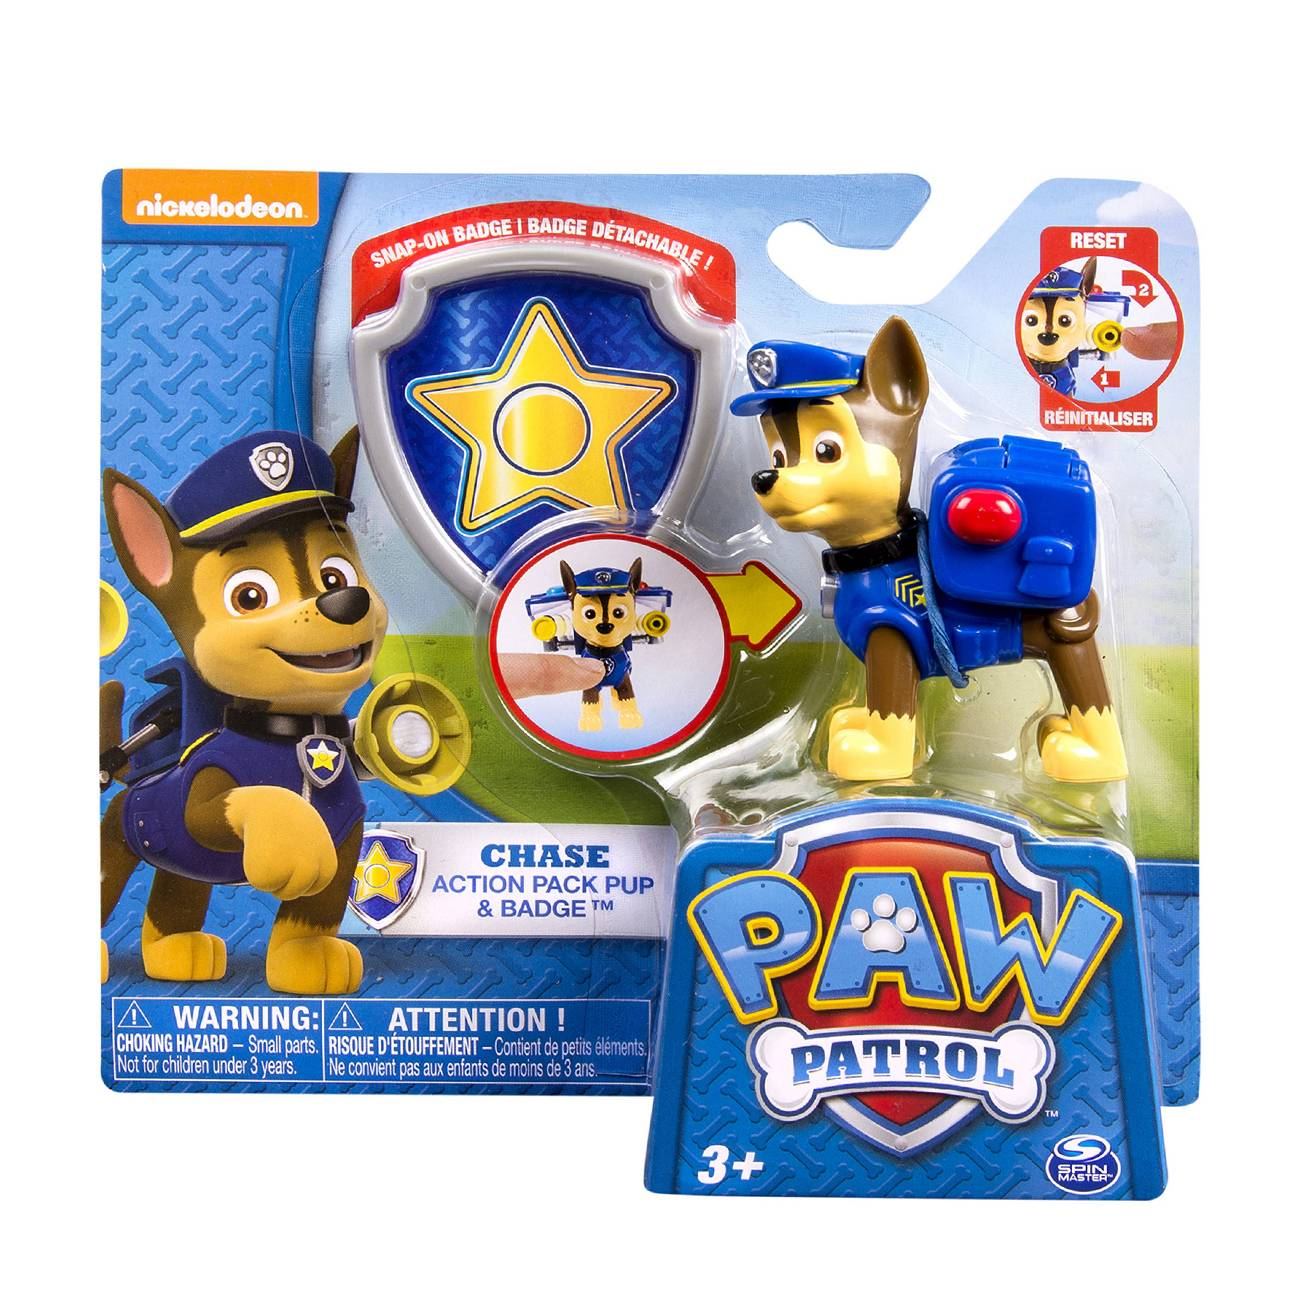 ACTION PACK PUP& BADGE